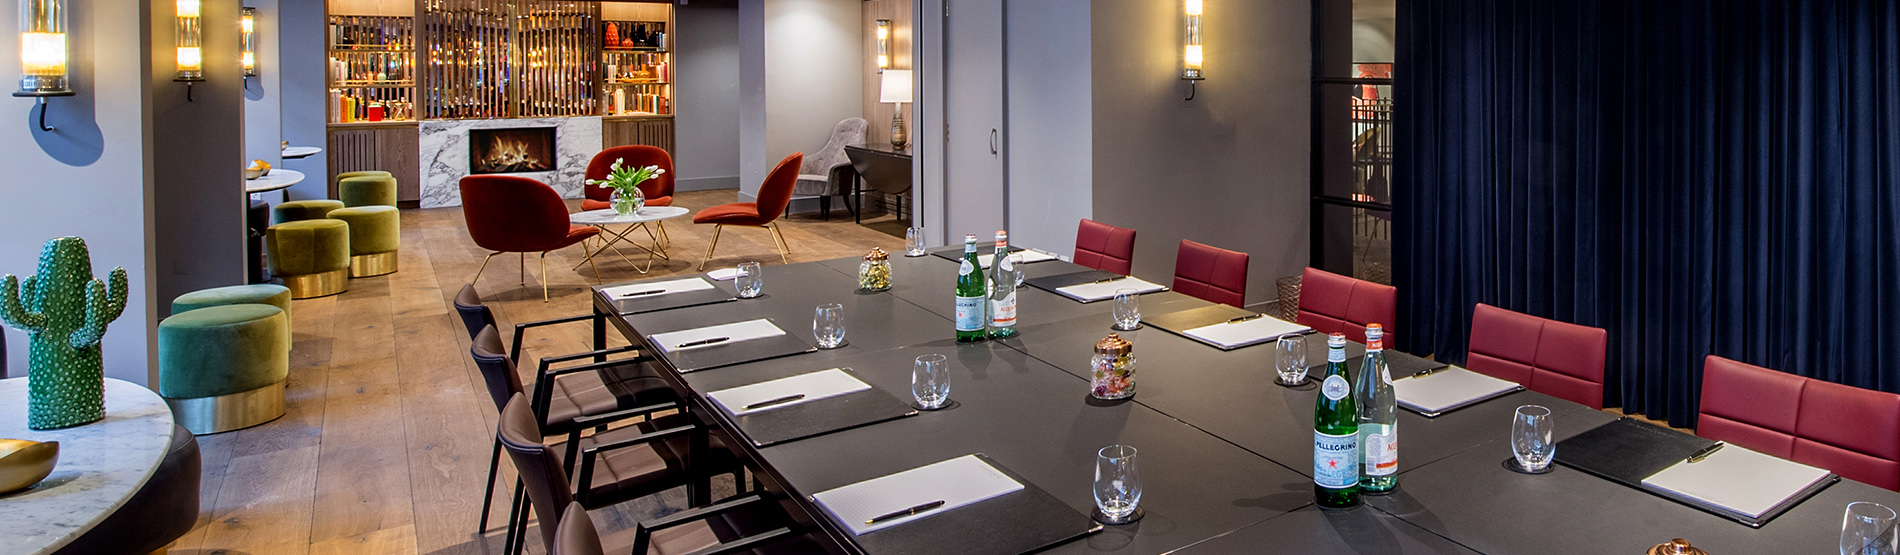 The Long Room boardroom at The Marylebone